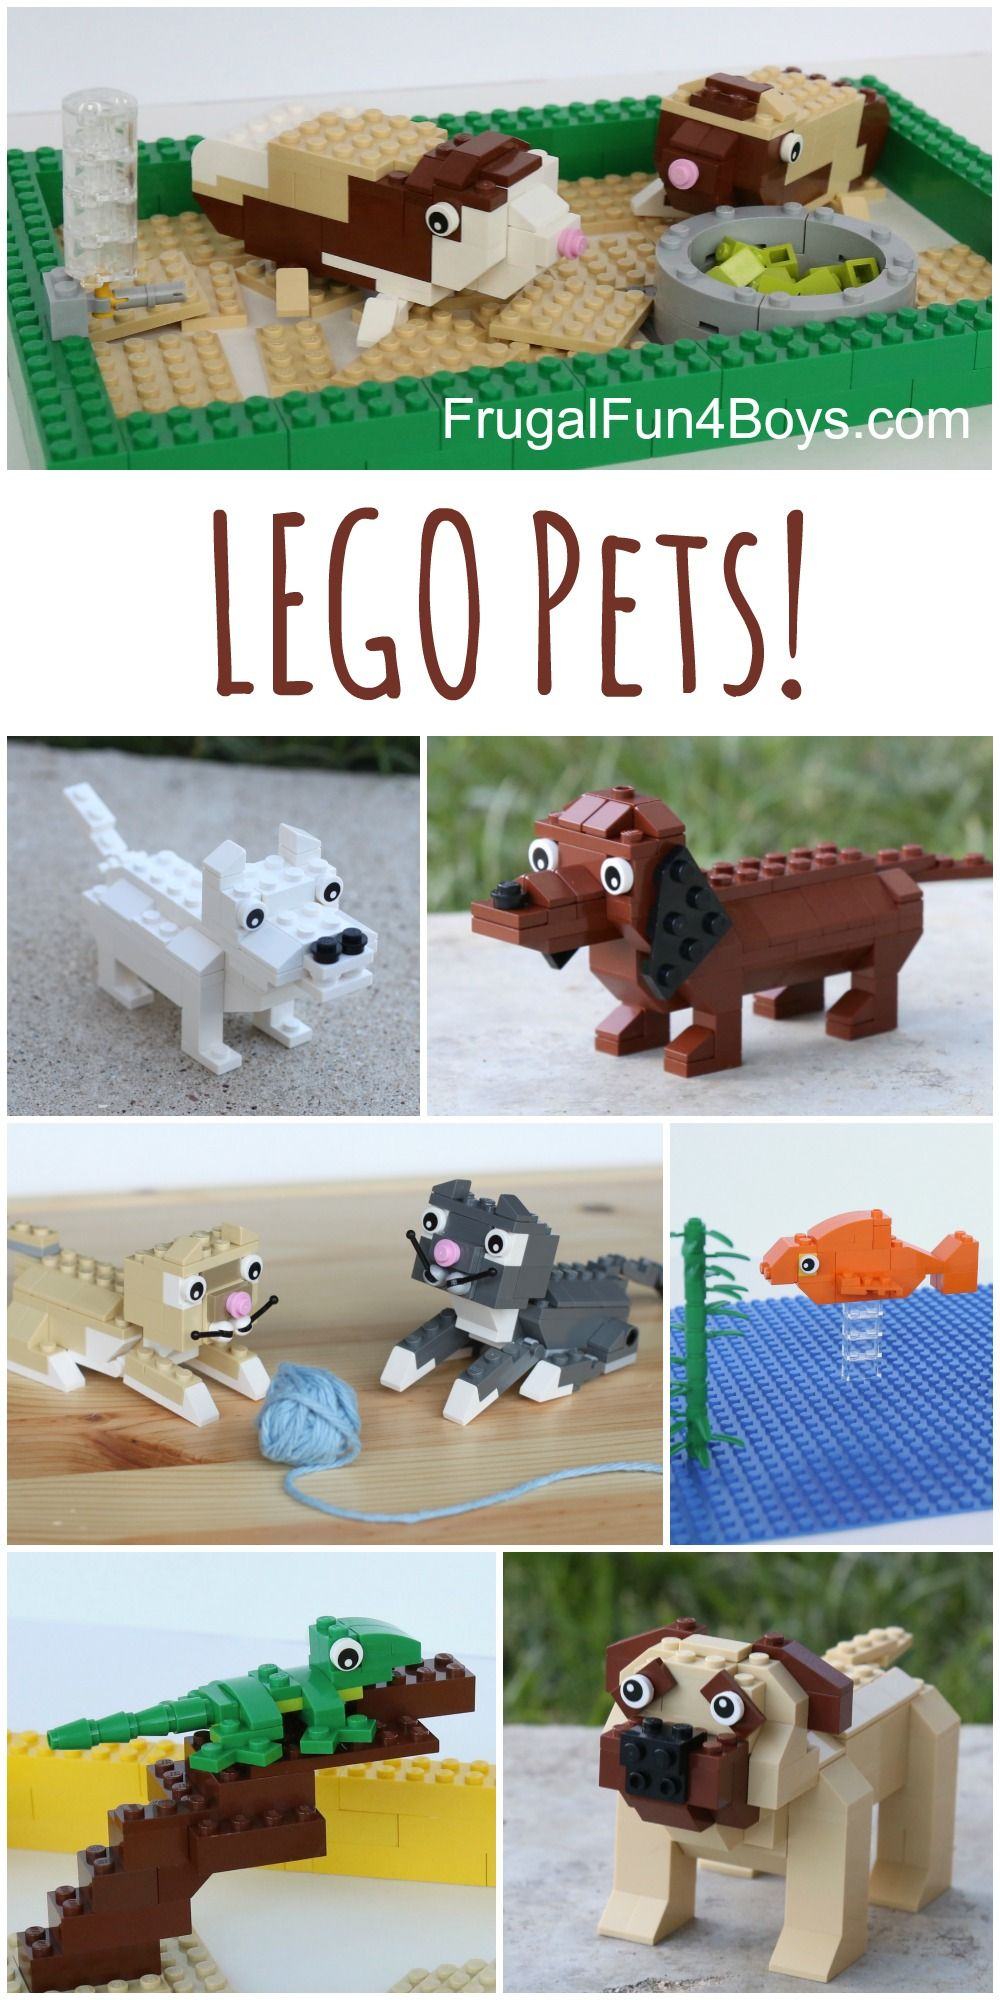 Lego Pets Building Instructions For Dogs Cats Guinea Pigs